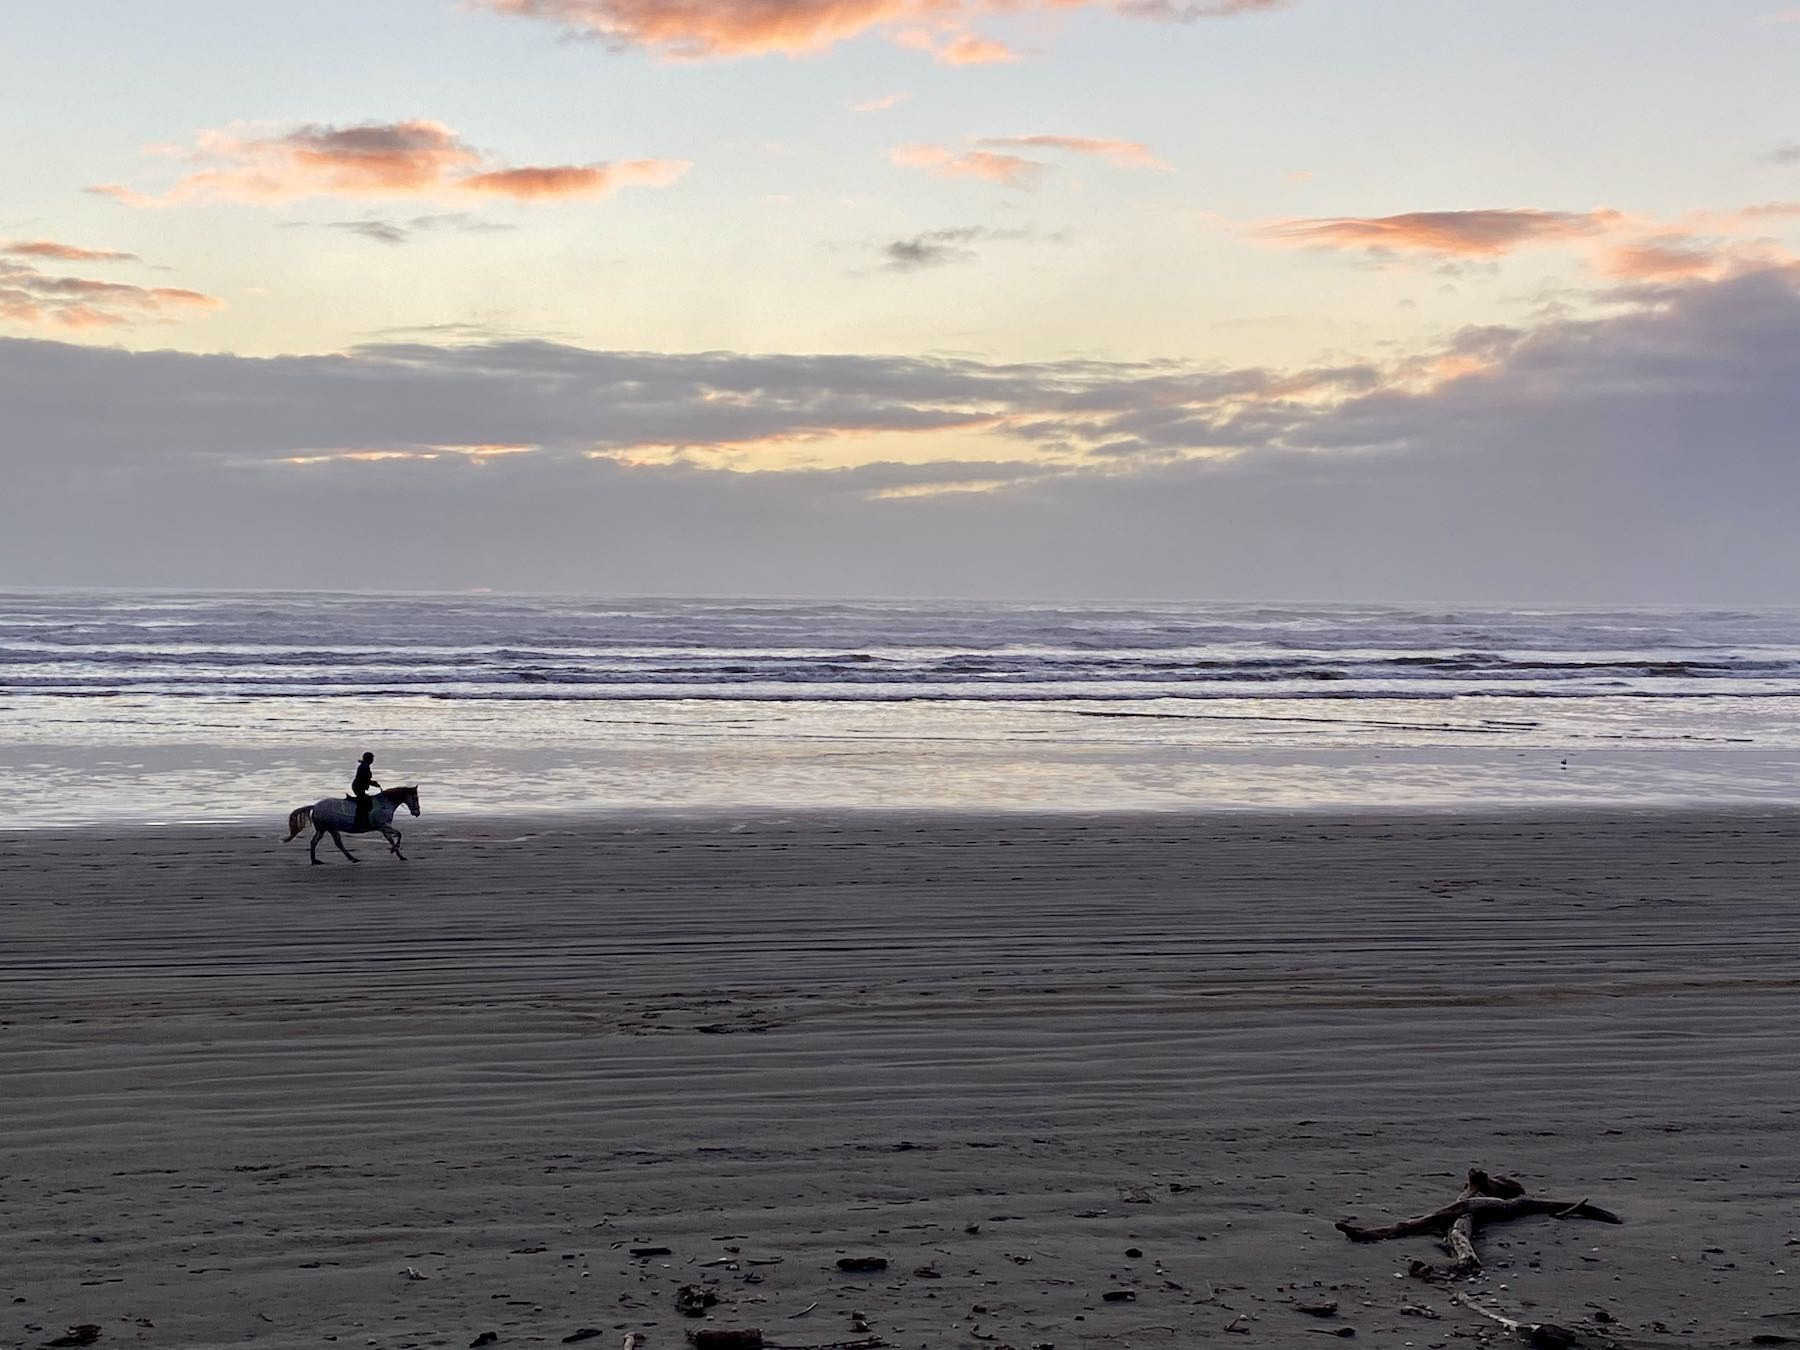 Horse at the edge of the sea, with rider standing up on the stirrups.